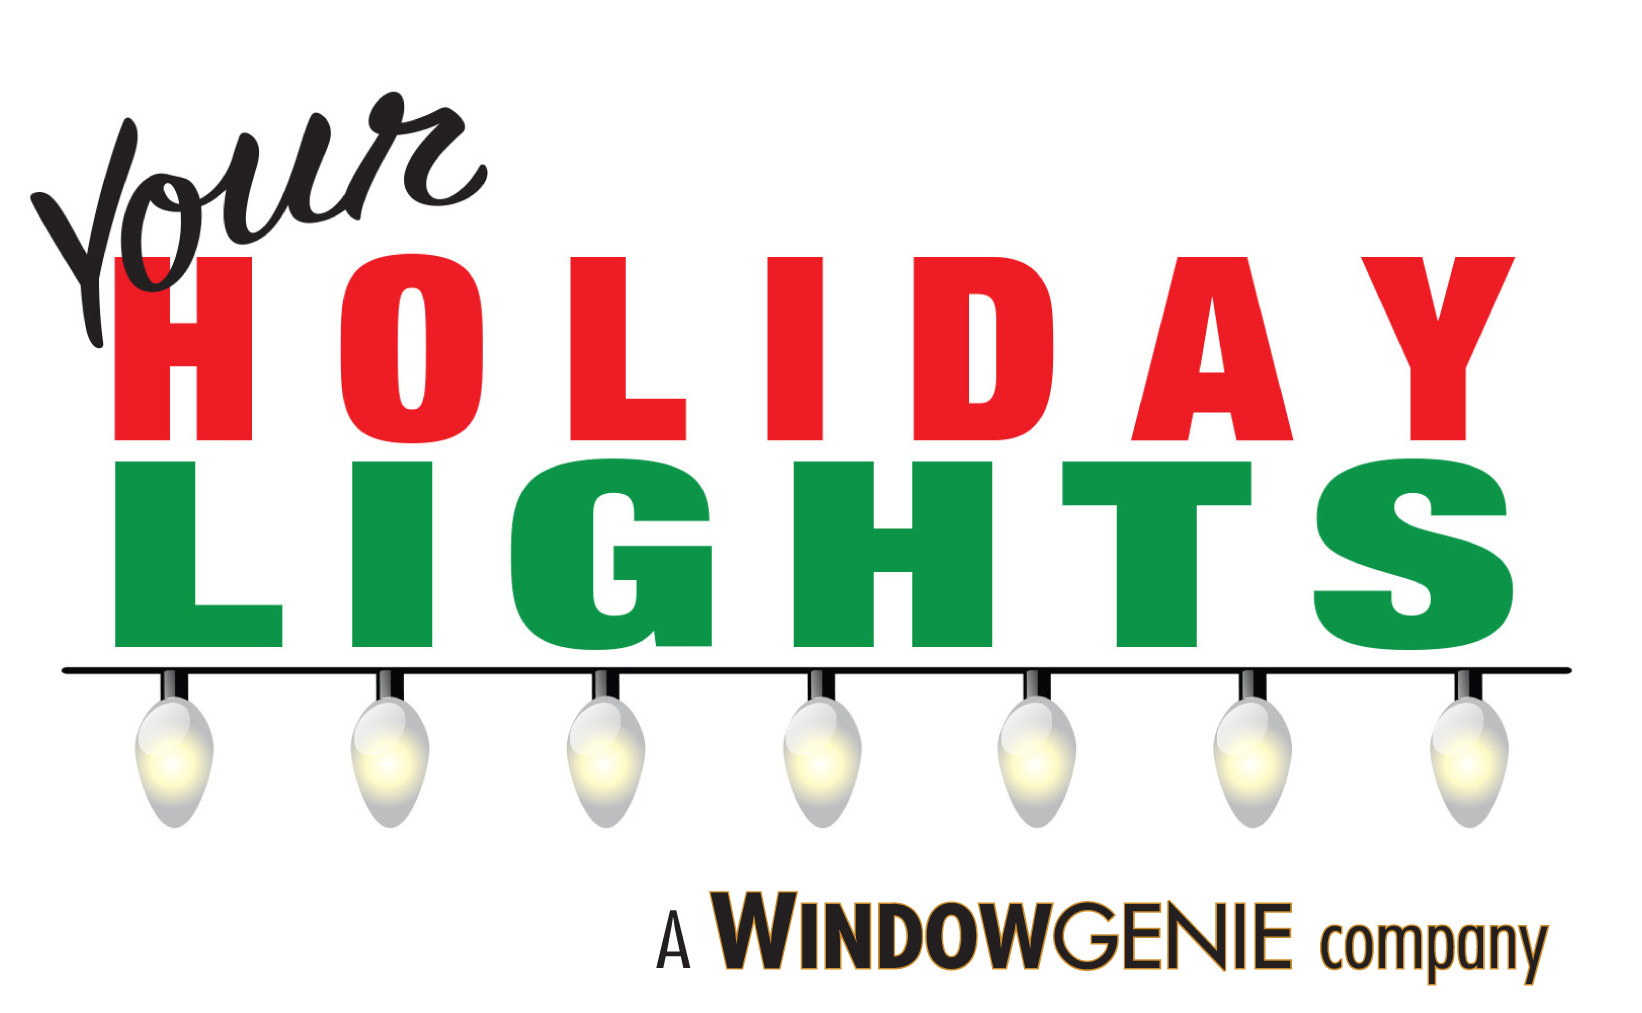 Window Genie Debuts New Holiday Lighting Service